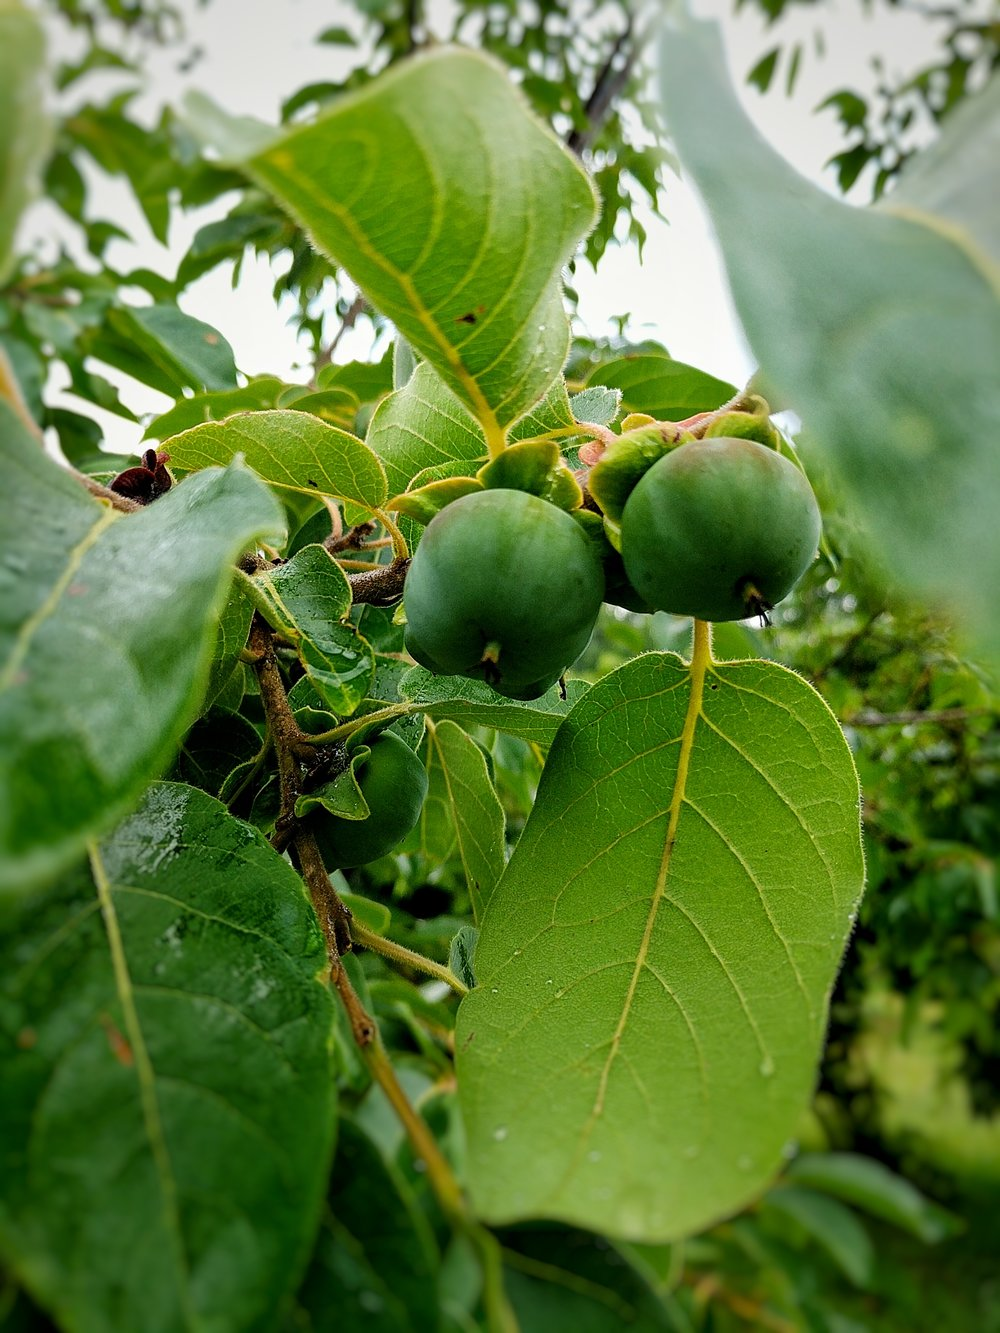 Diospyros virginiana ' Meader' American Persimmon is an especially cold hardy variety adapted to the Northeast